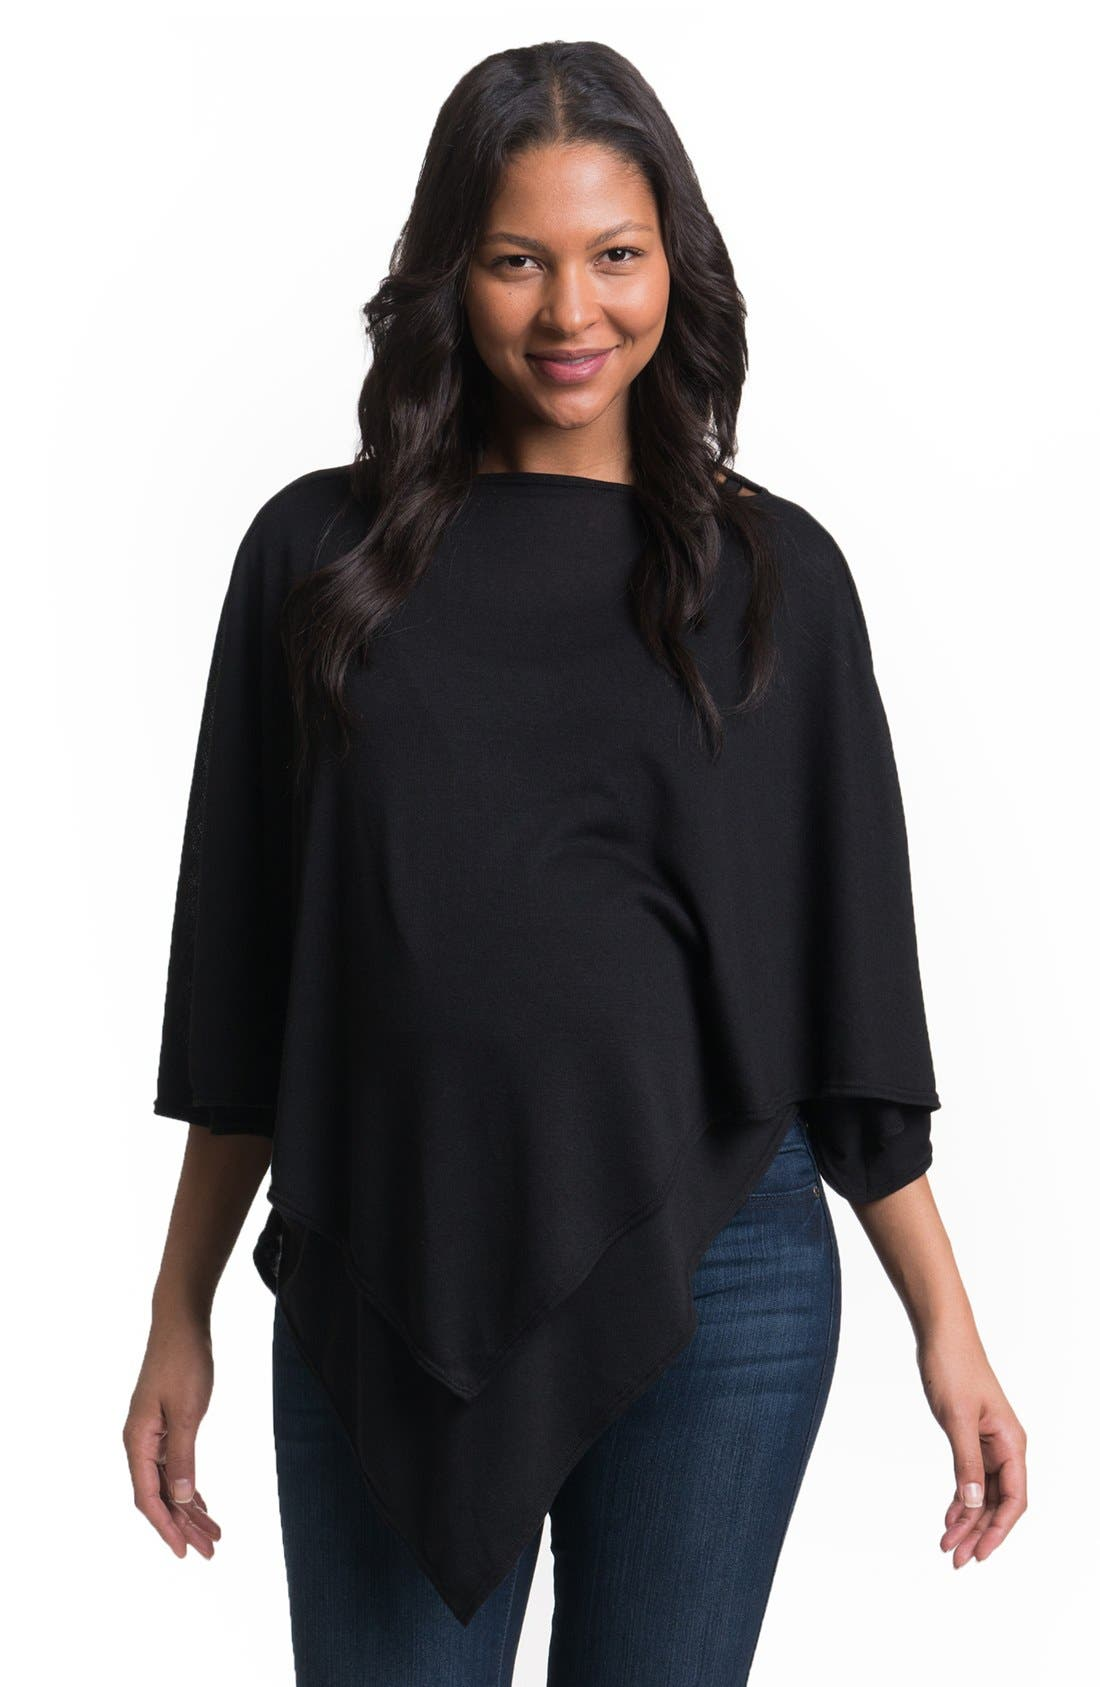 BUN MATERNITY Cozy Up Maternity/Nursing Poncho